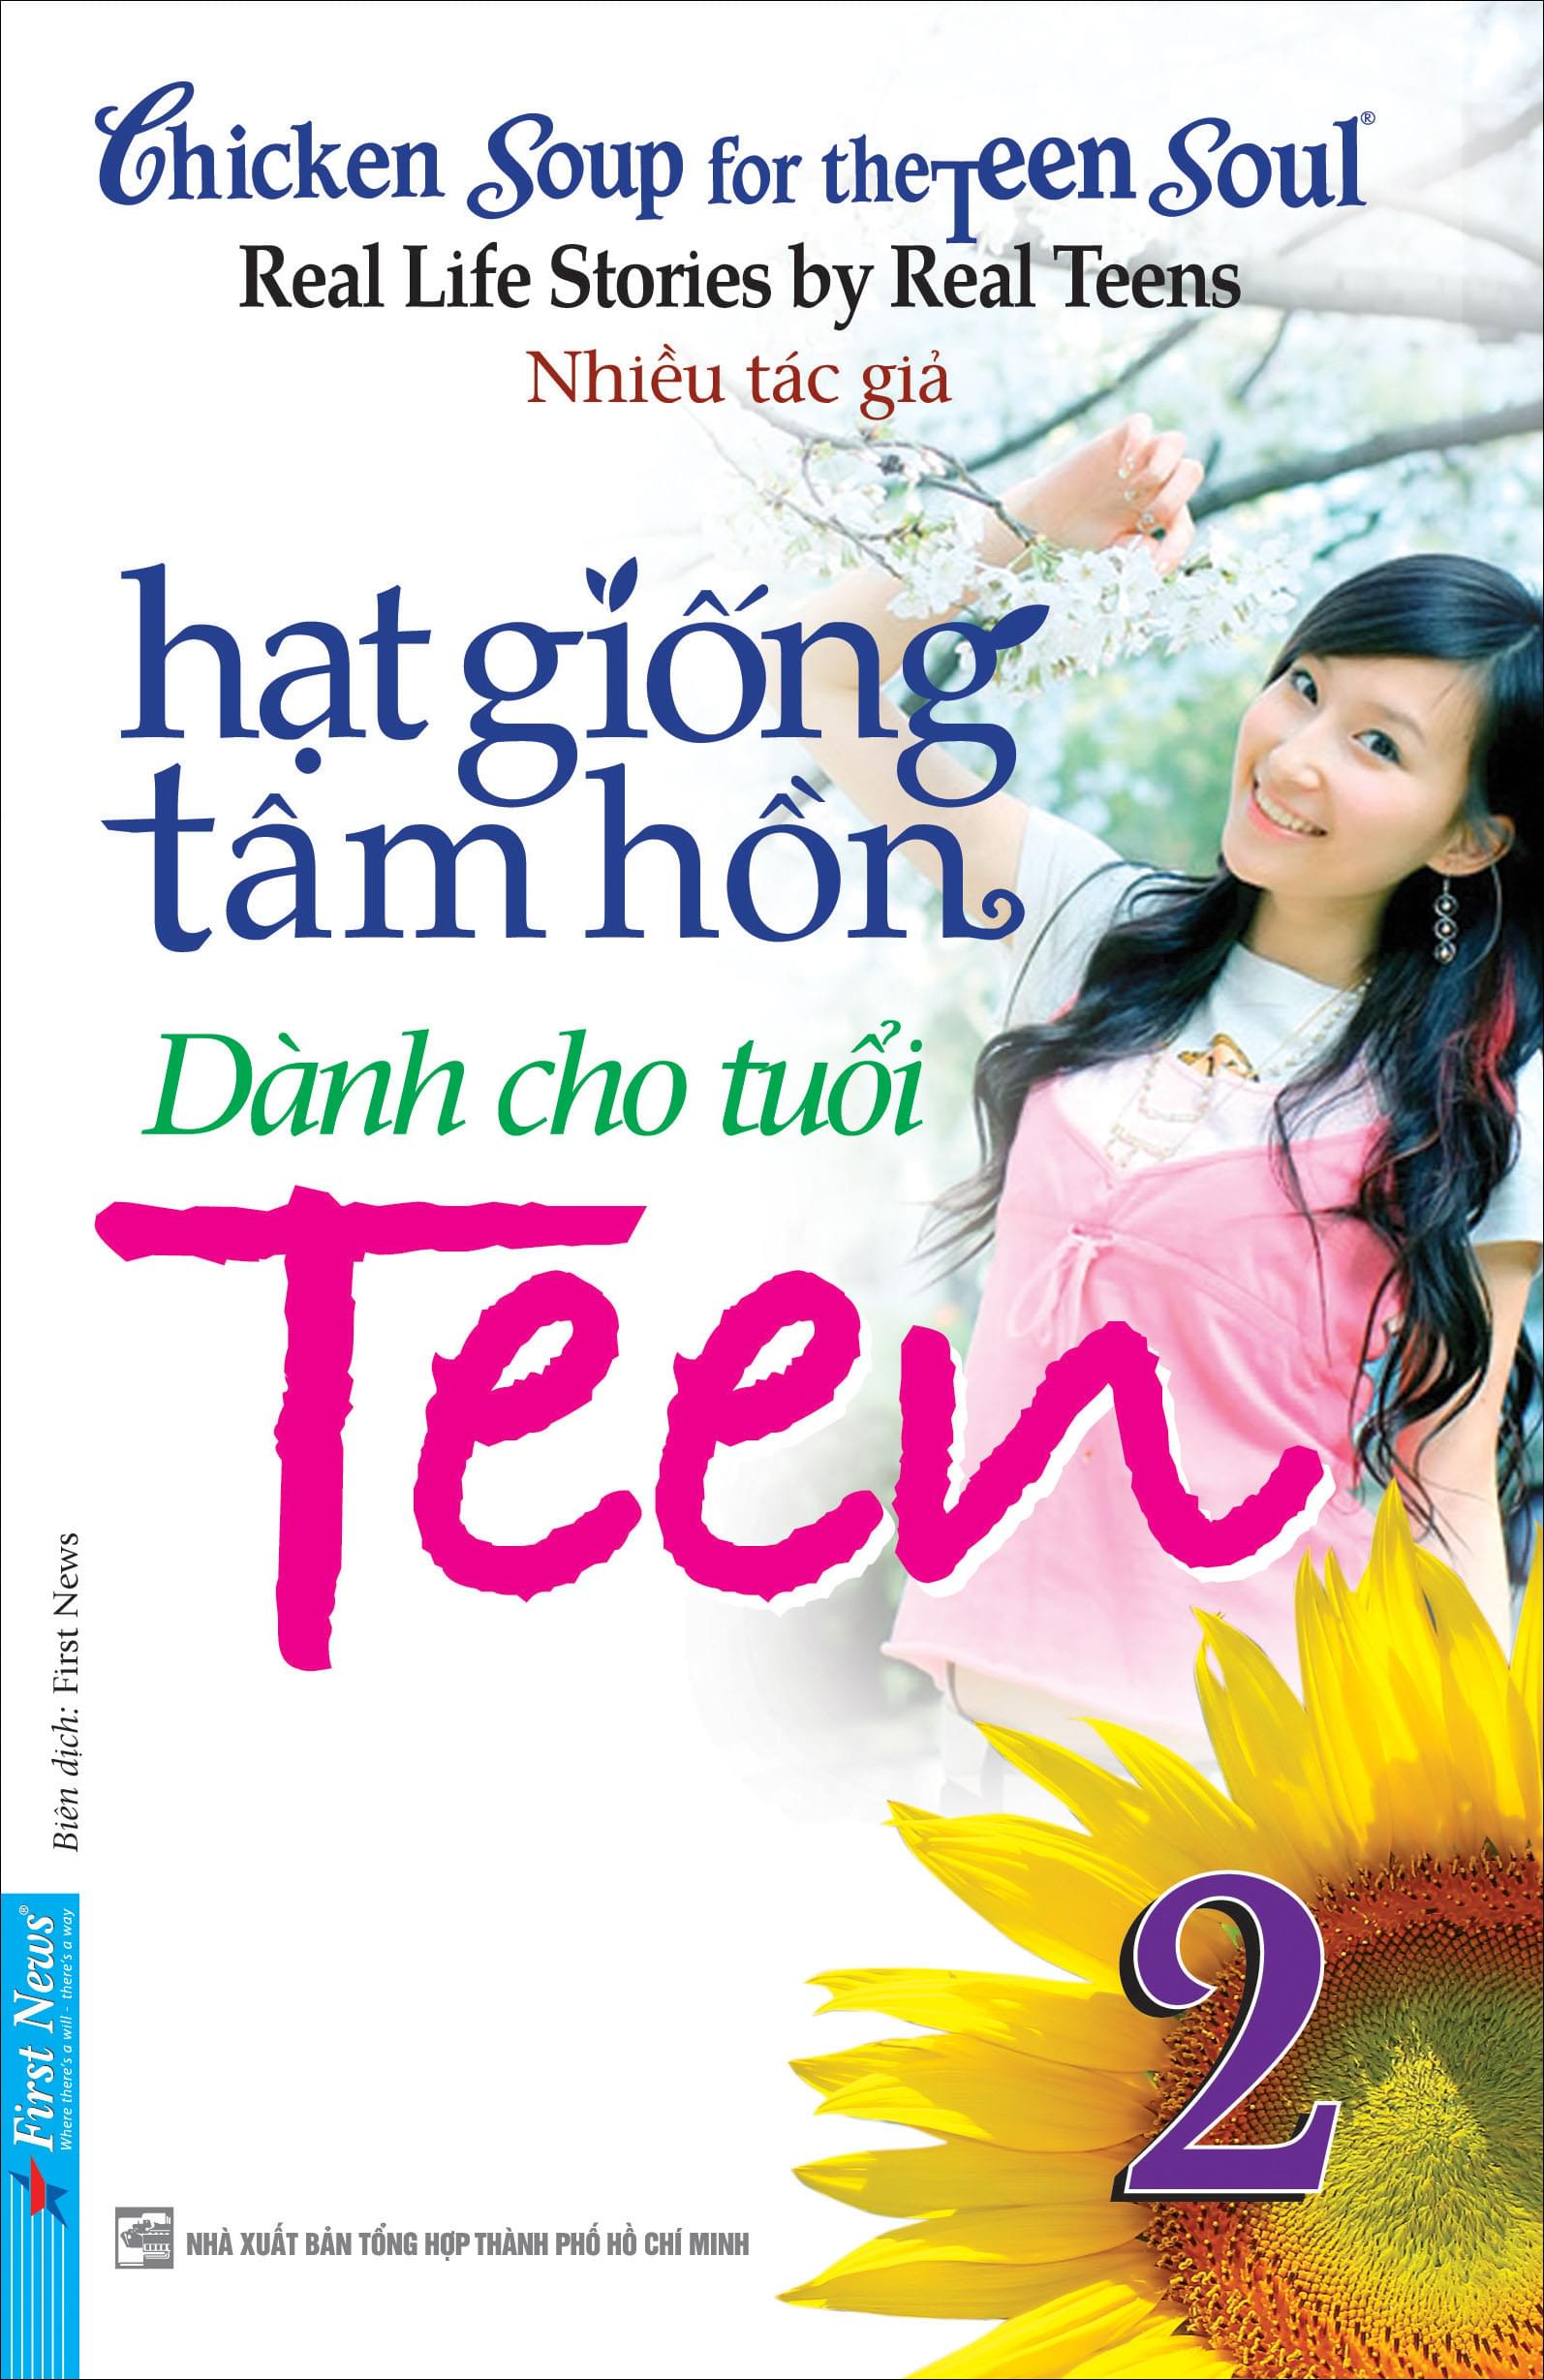 CHICKEN SOUP FOR THE TEEN SOUL - DÀNH CHO TUỔI TEEN 2